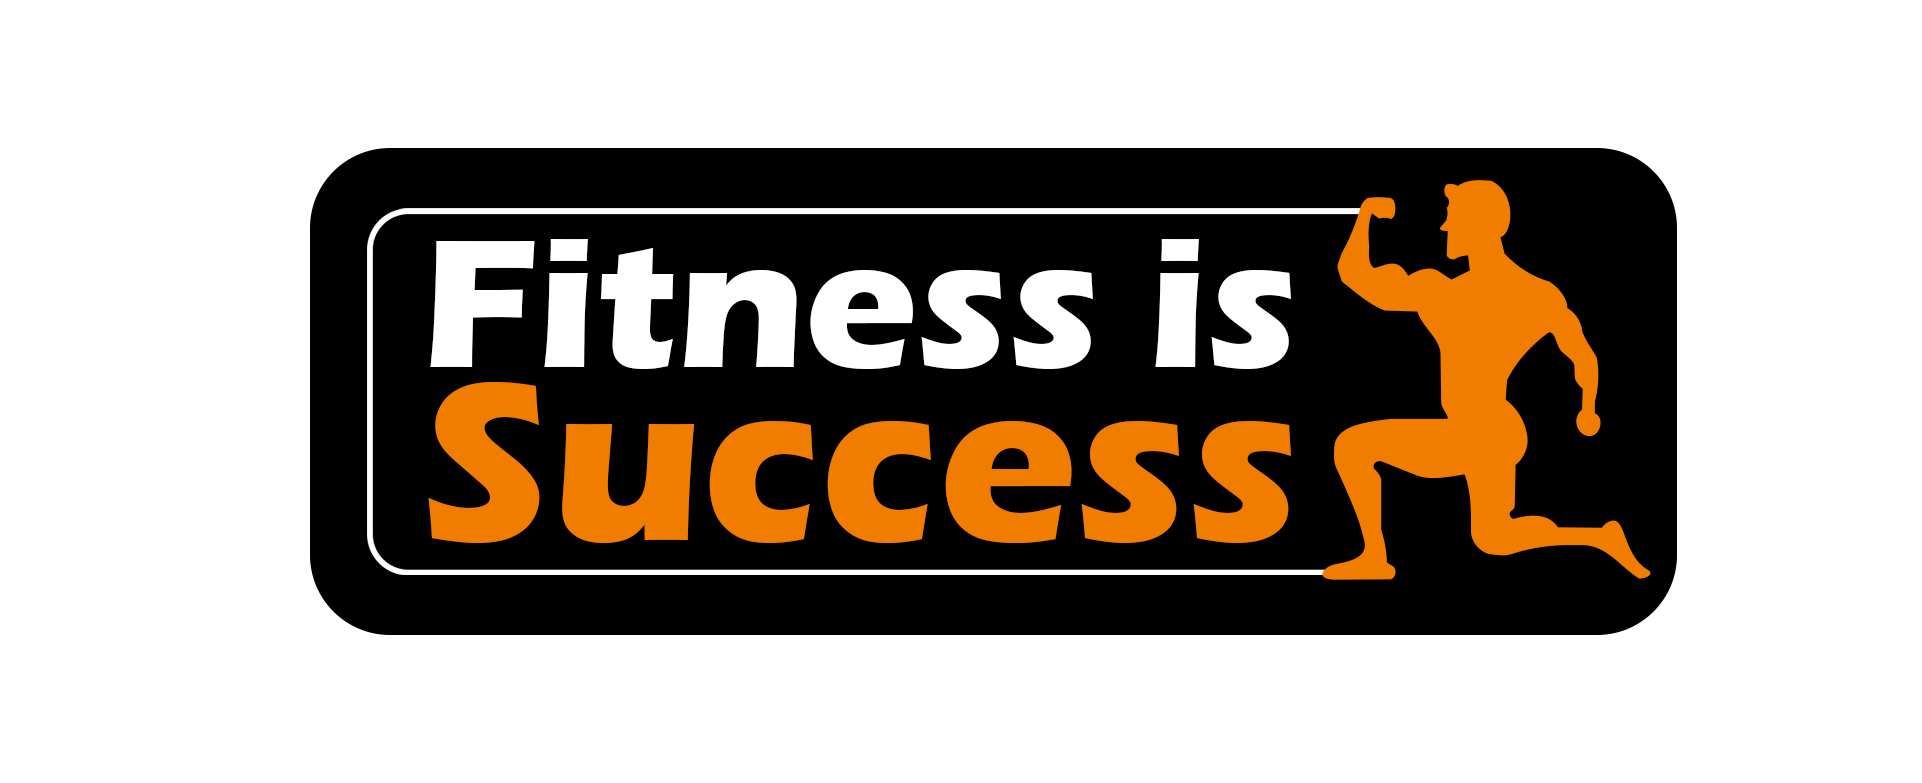 sdaf asdf  | Fitness is Success